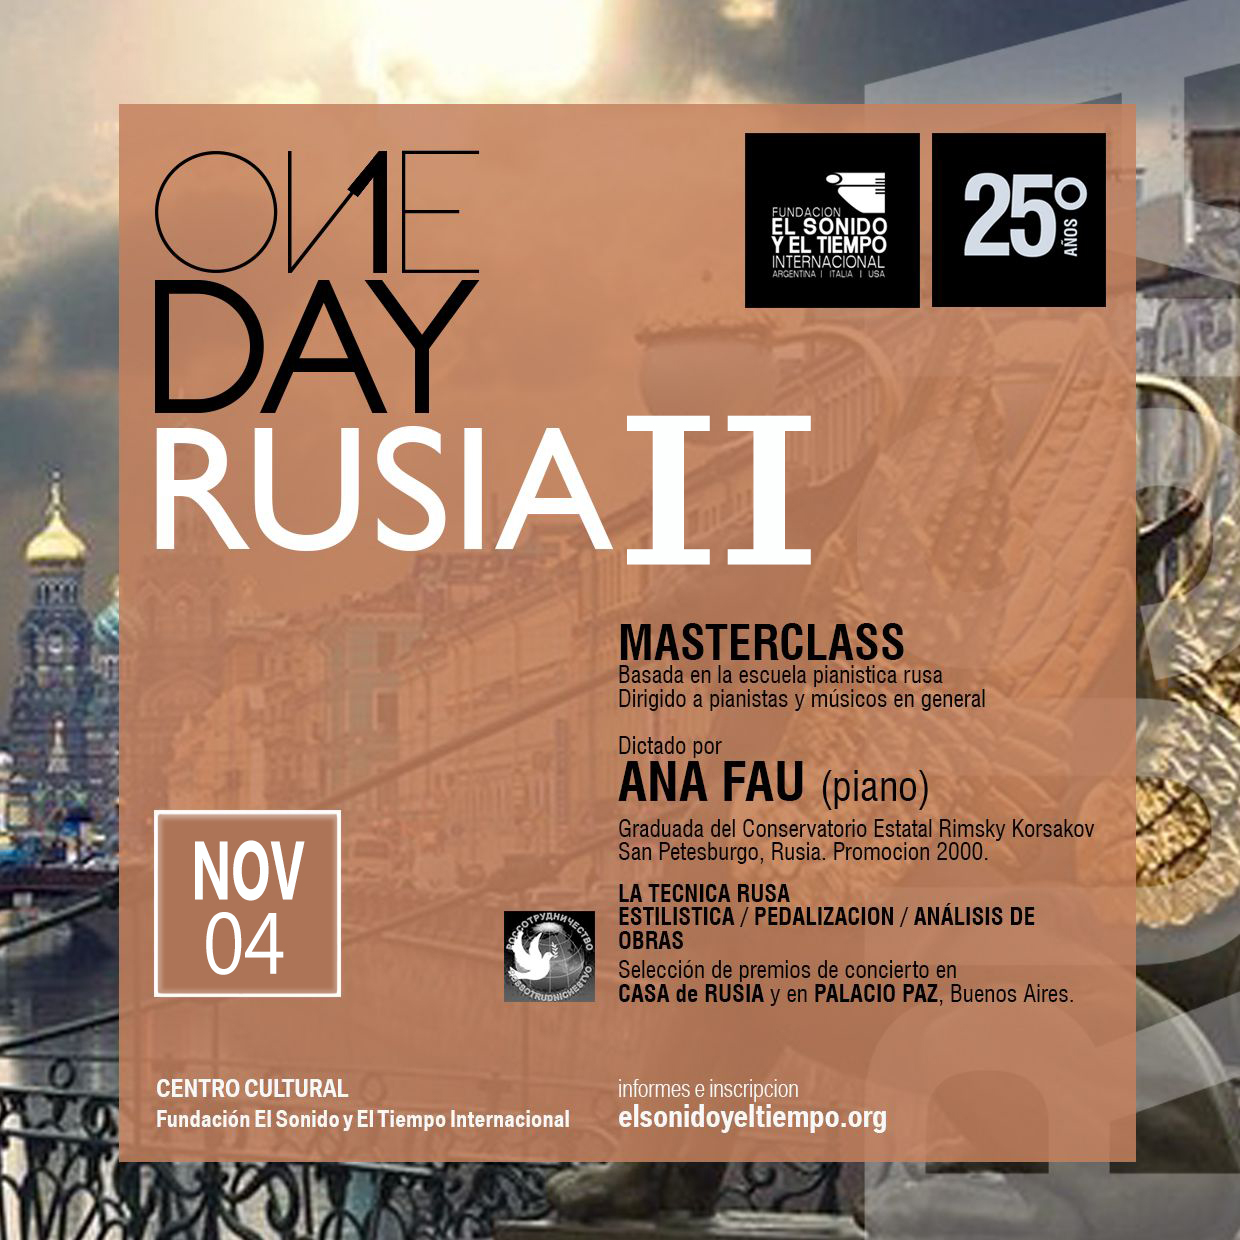 ONE DAY RUSIAII